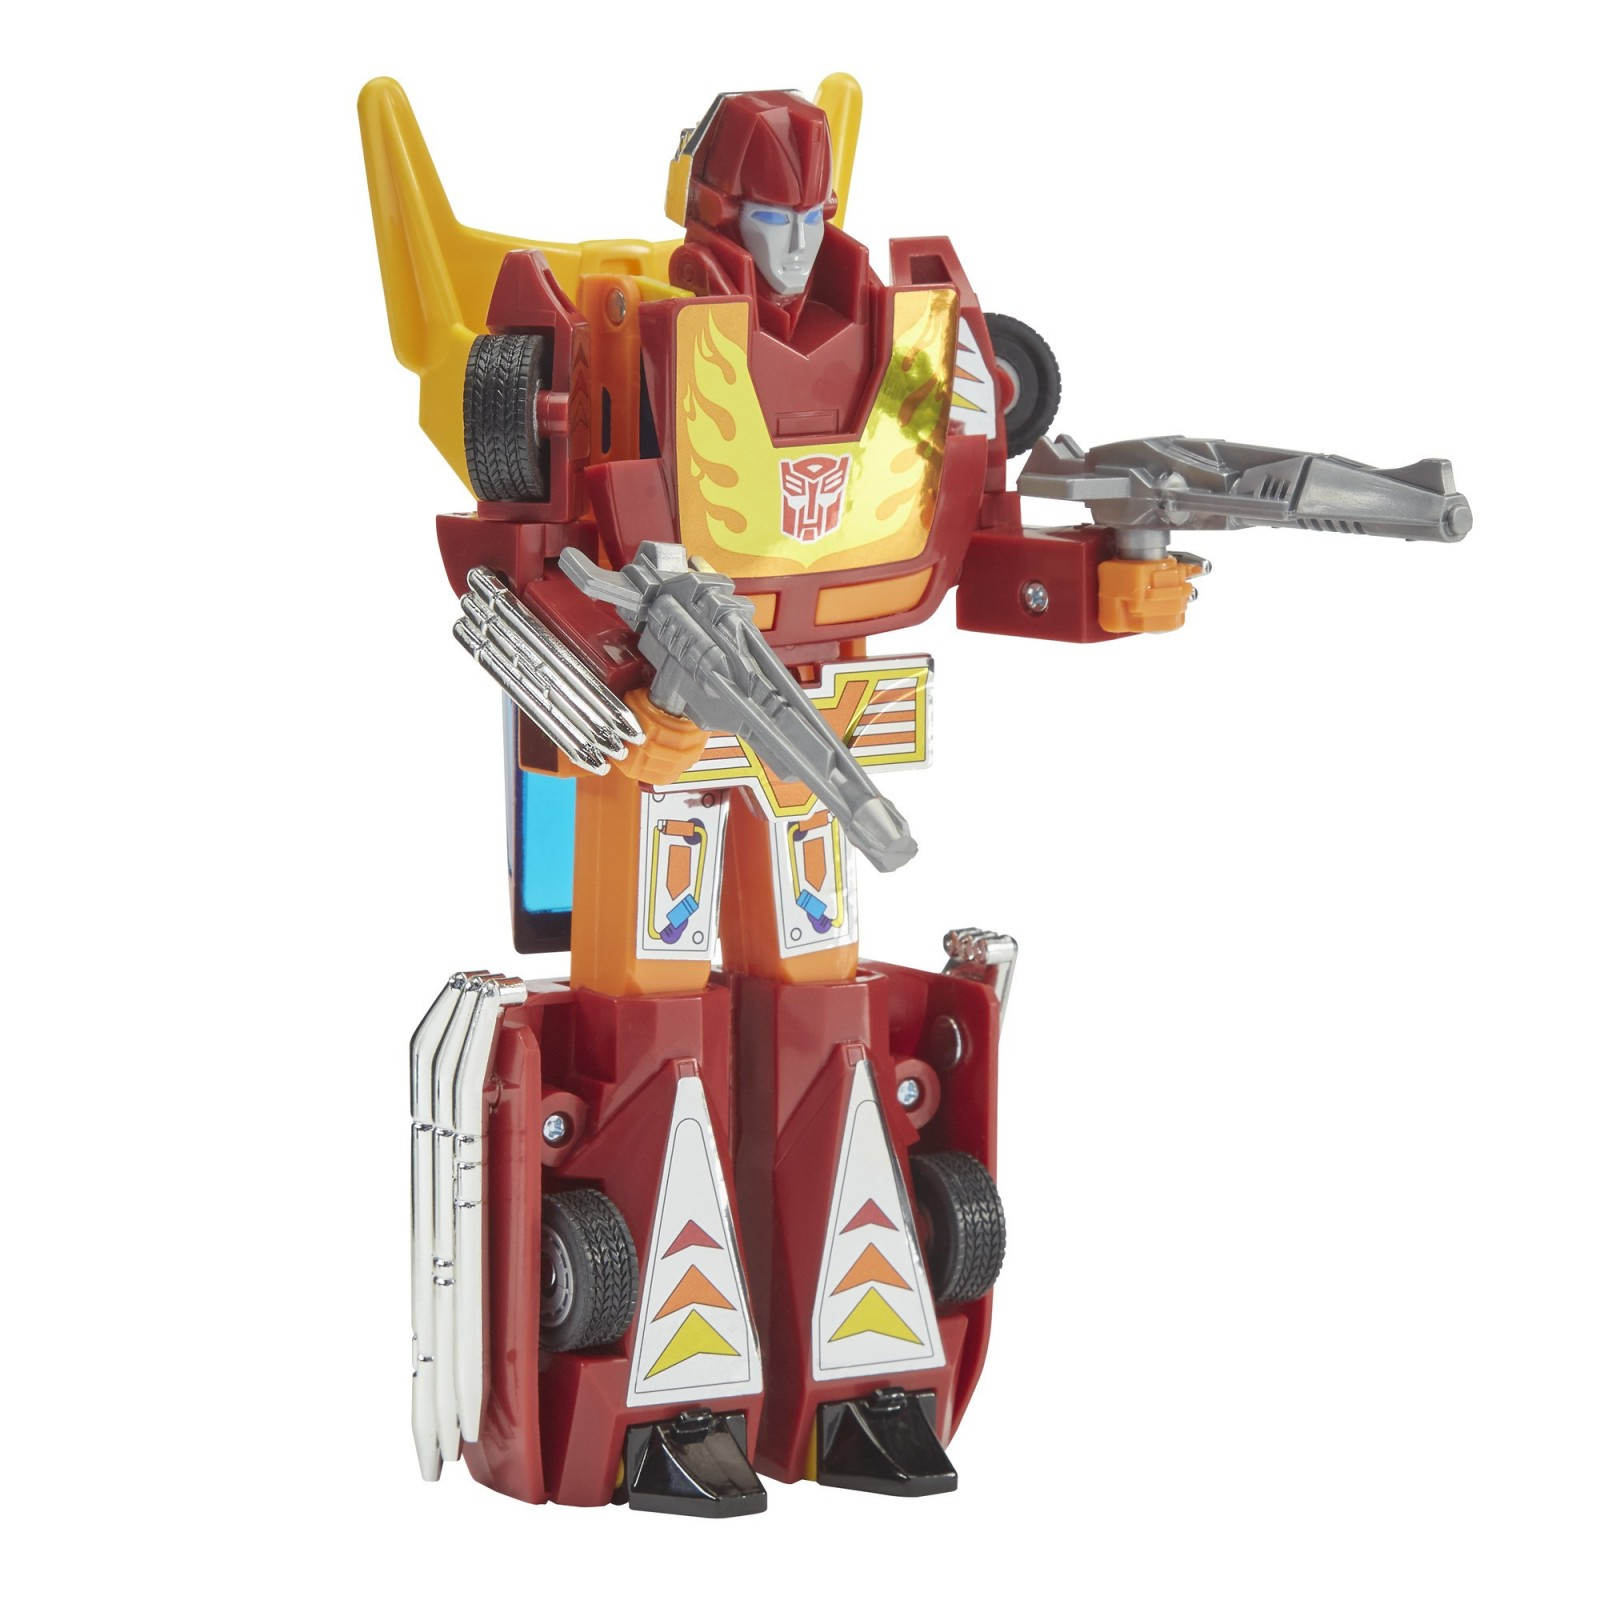 Transformers News: G1 Hot Rod reissue available for 50% off currently on Walmart.com